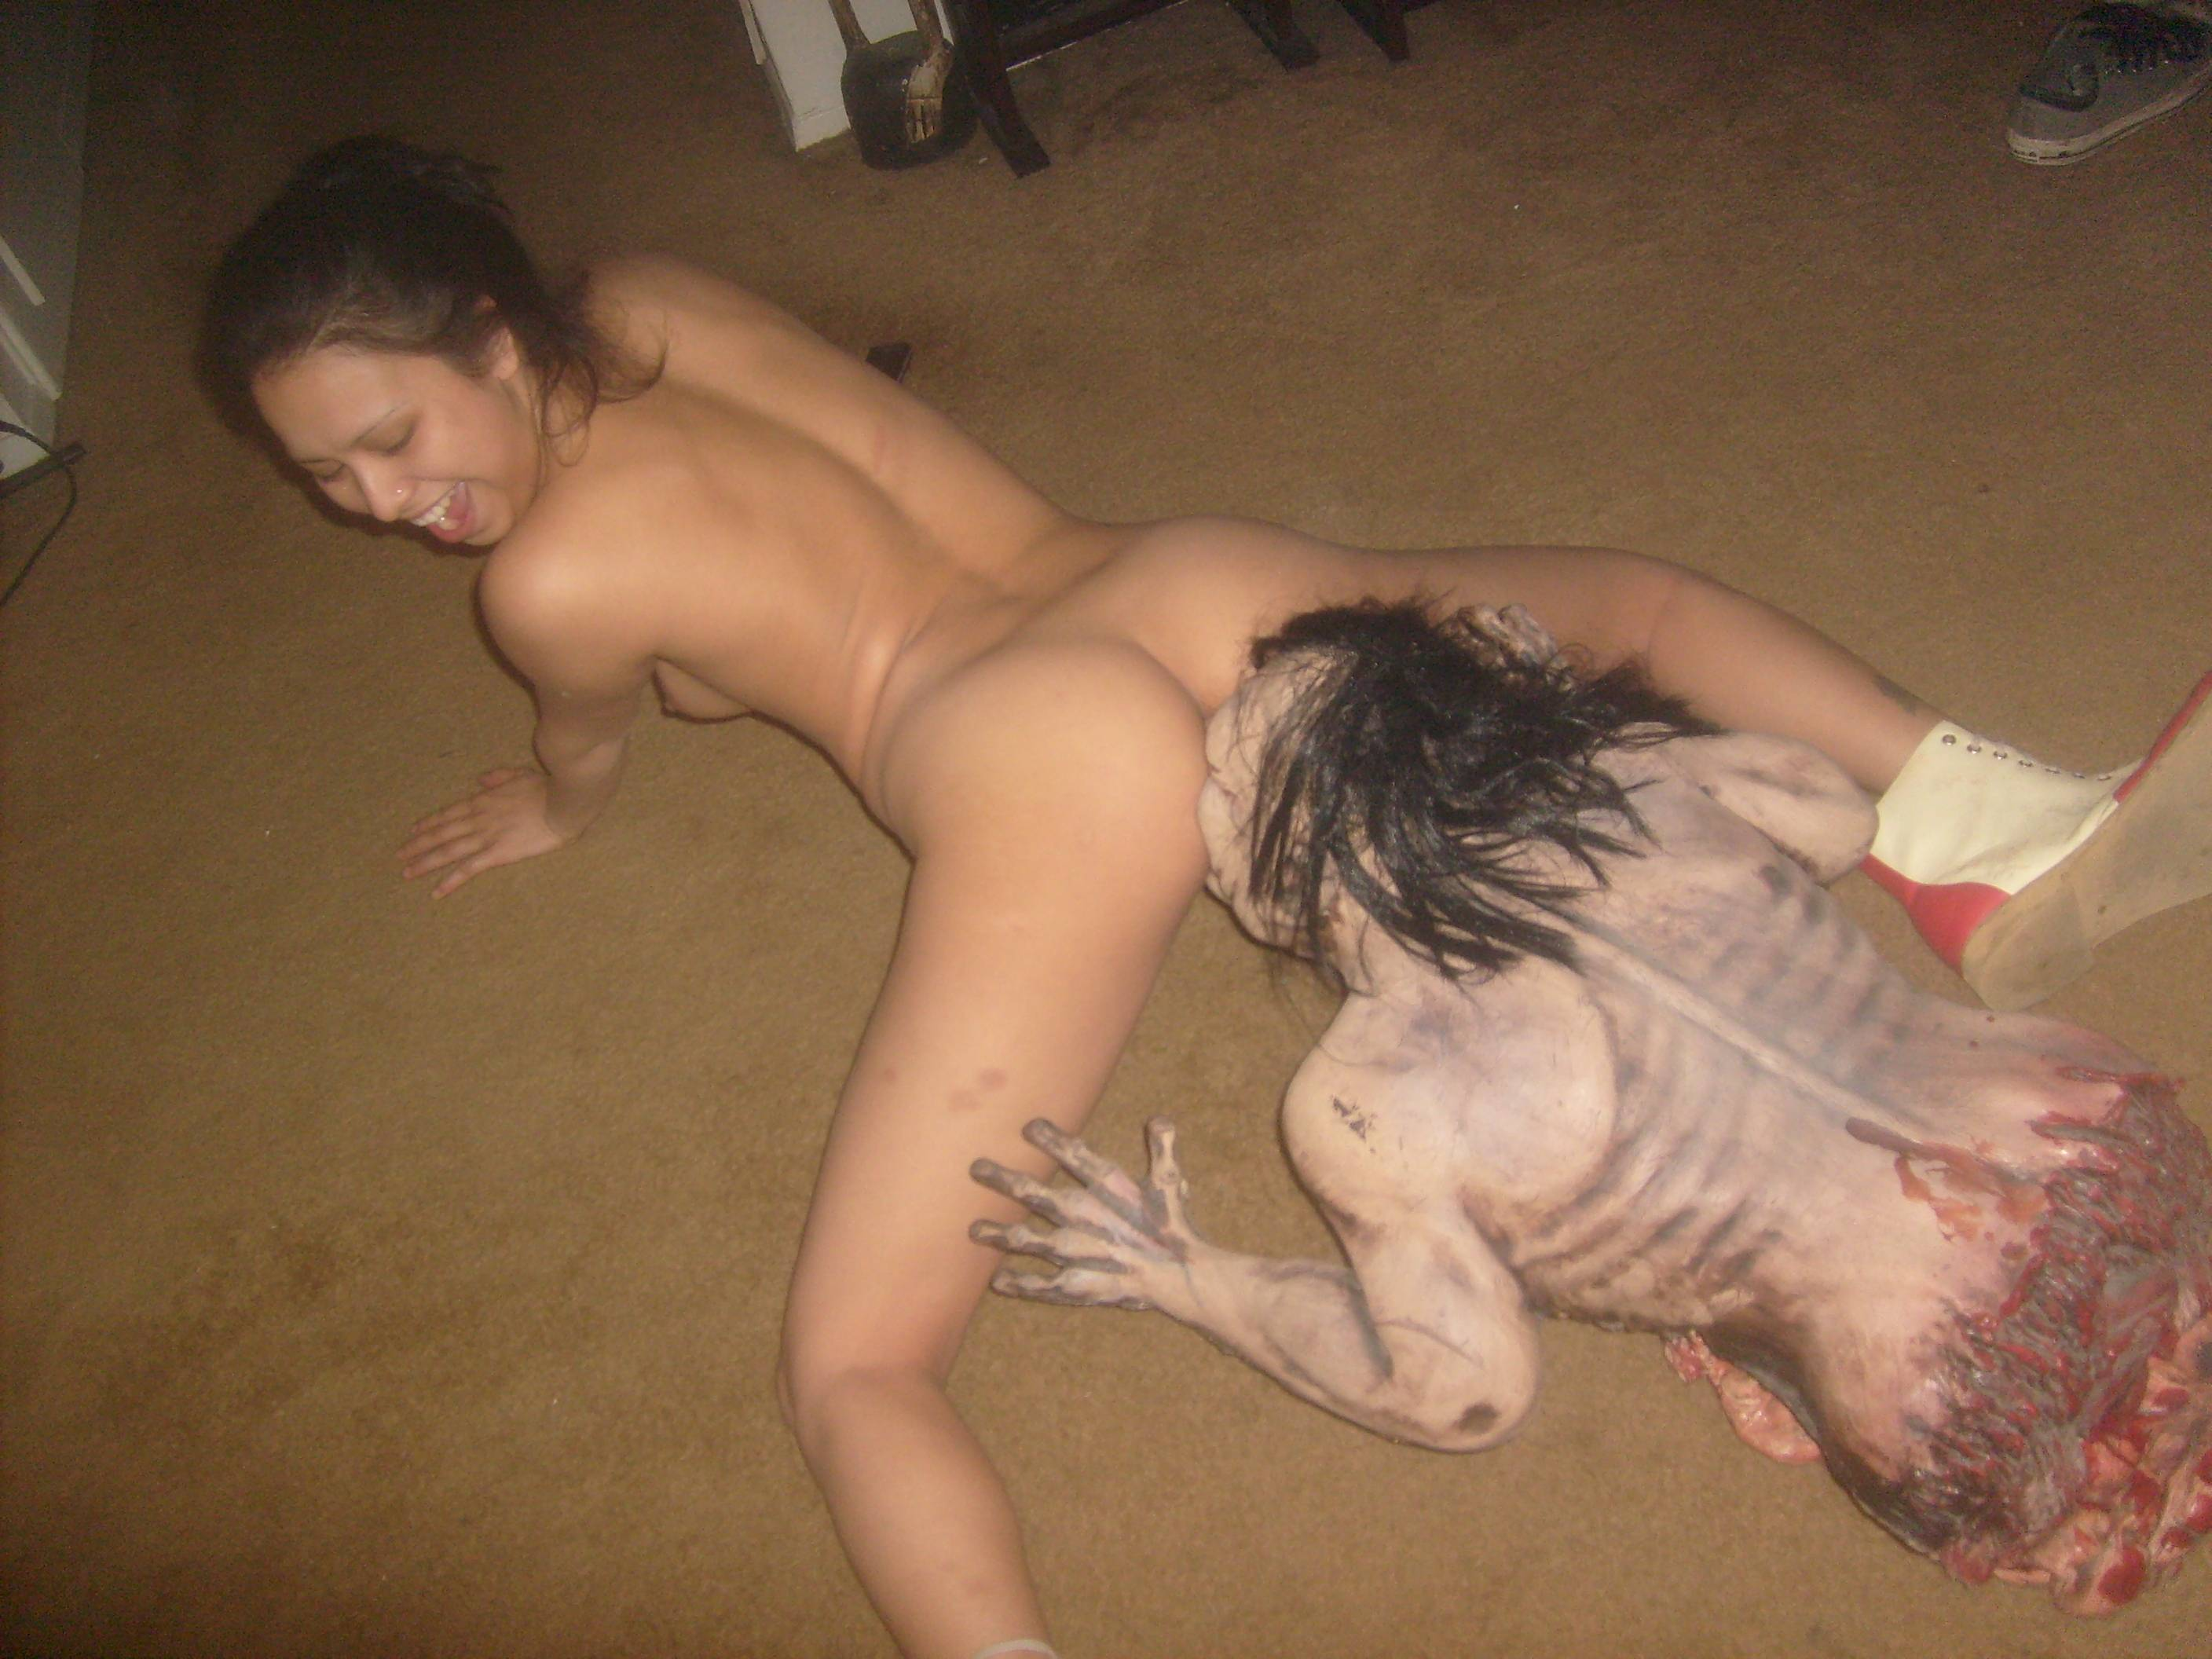 Xxx nude image of zombies in movies fucks movie